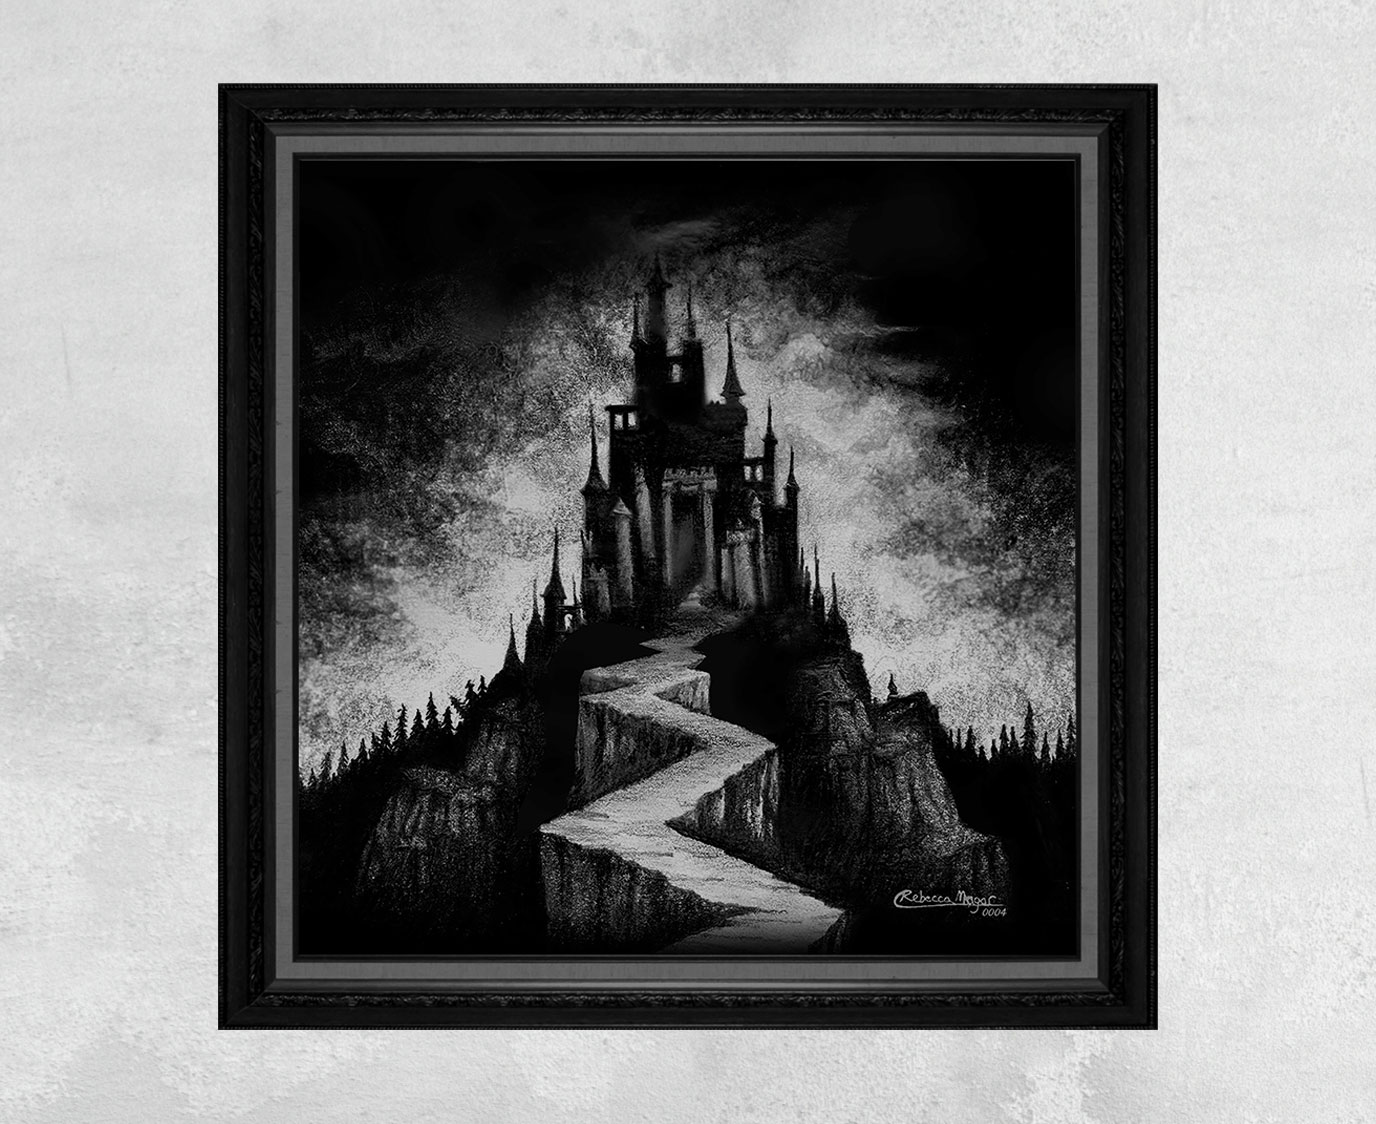 Print of a Black Castle on a Mountain